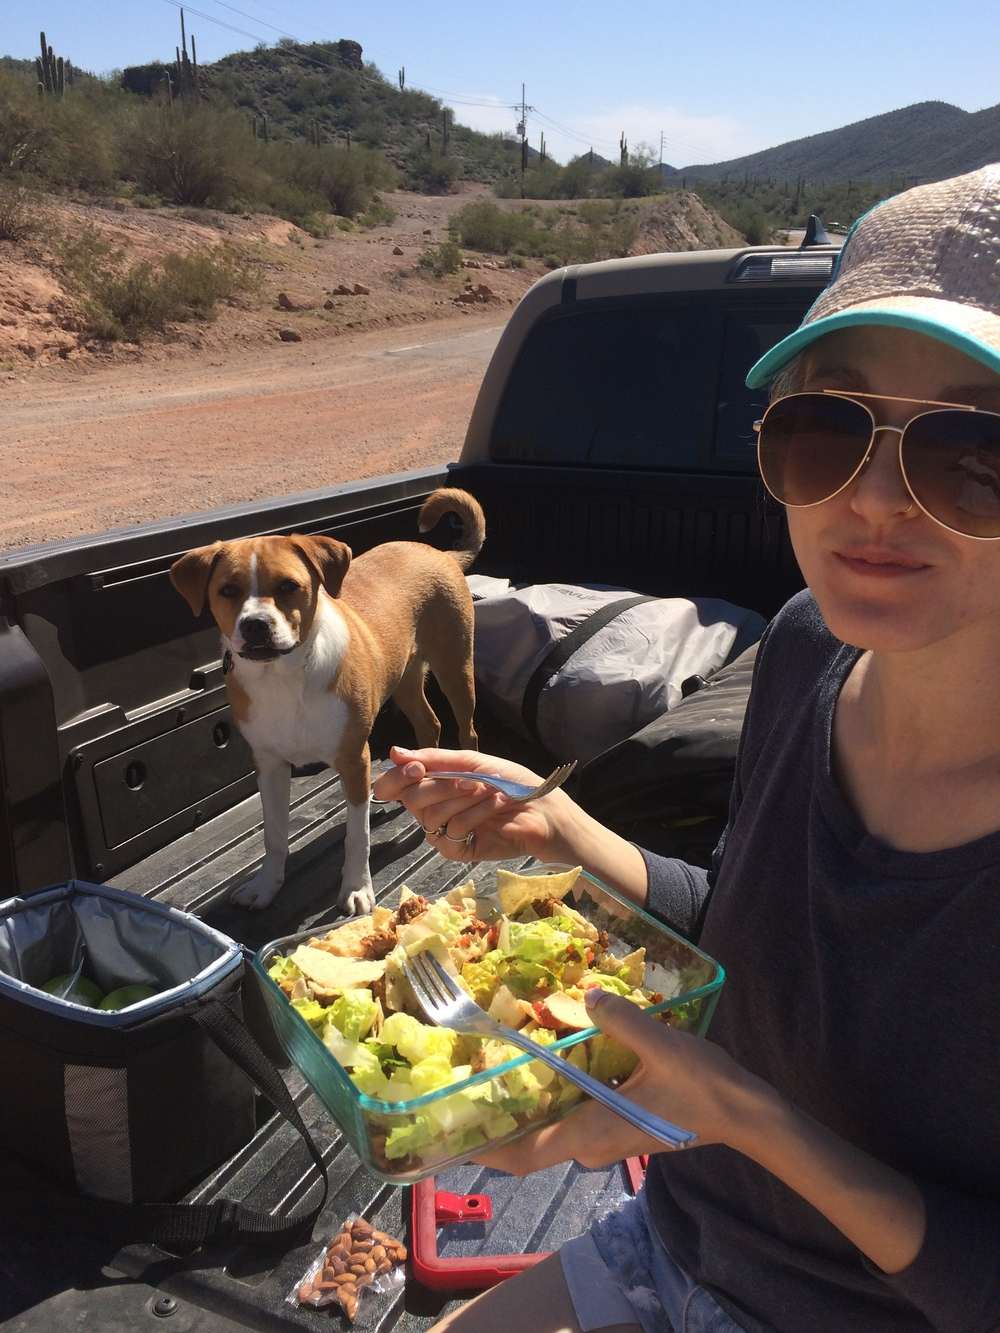 Picnic in the bed of the truck | Homemade taco salad with raw almonds and green apples